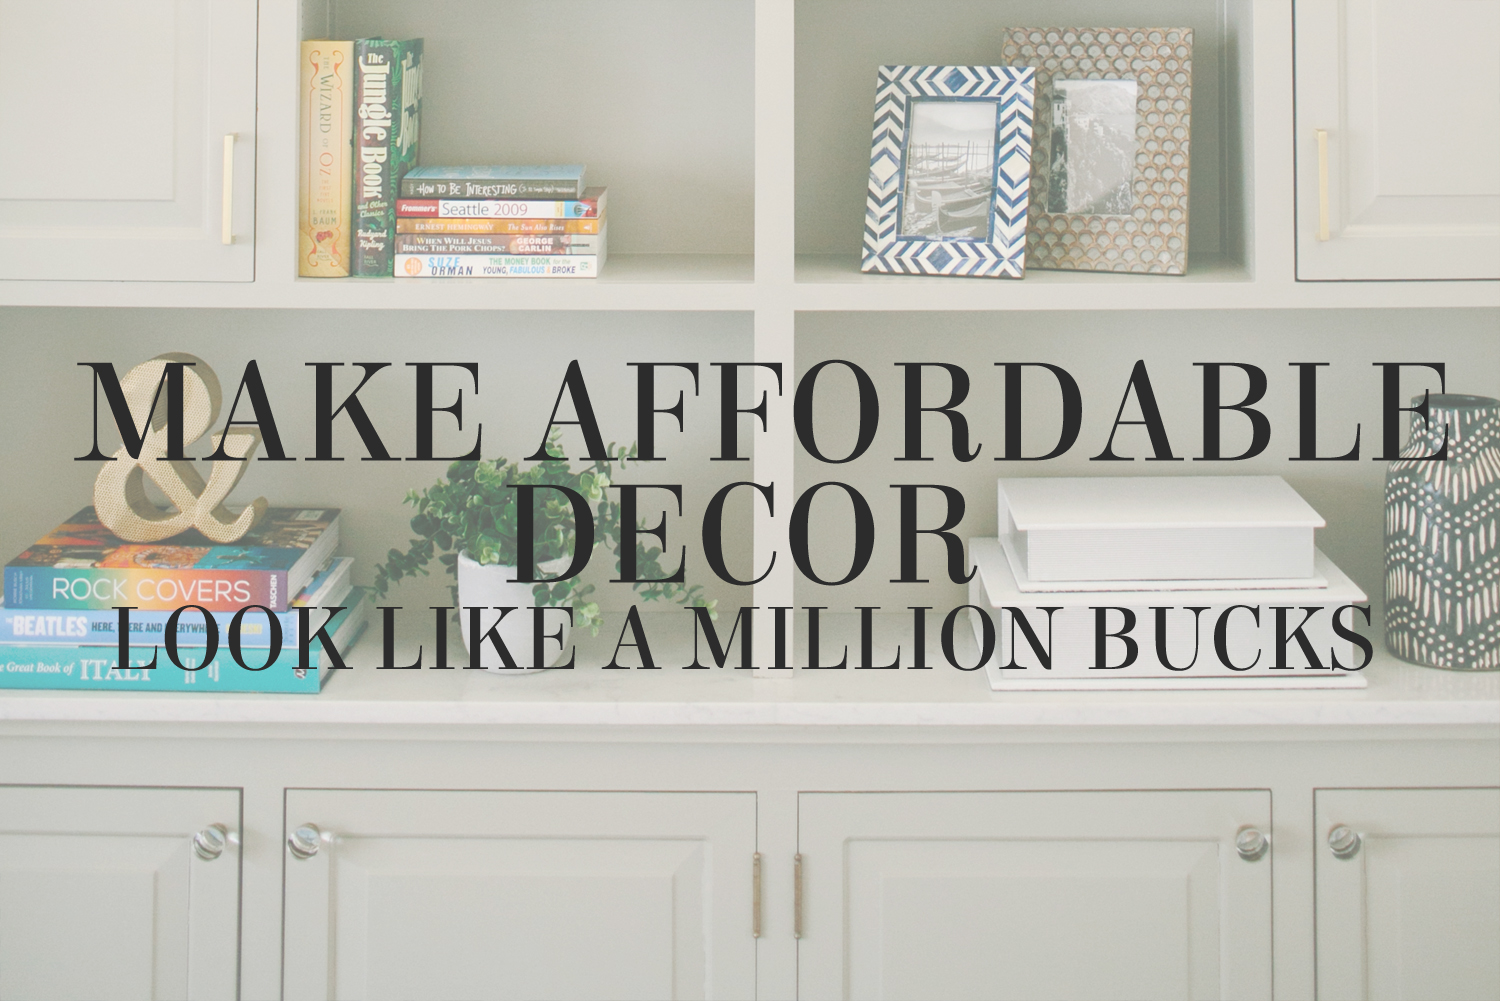 How to make affordable decor look like a million bucks | Design tips from Waco's best designer Lesley Myrick